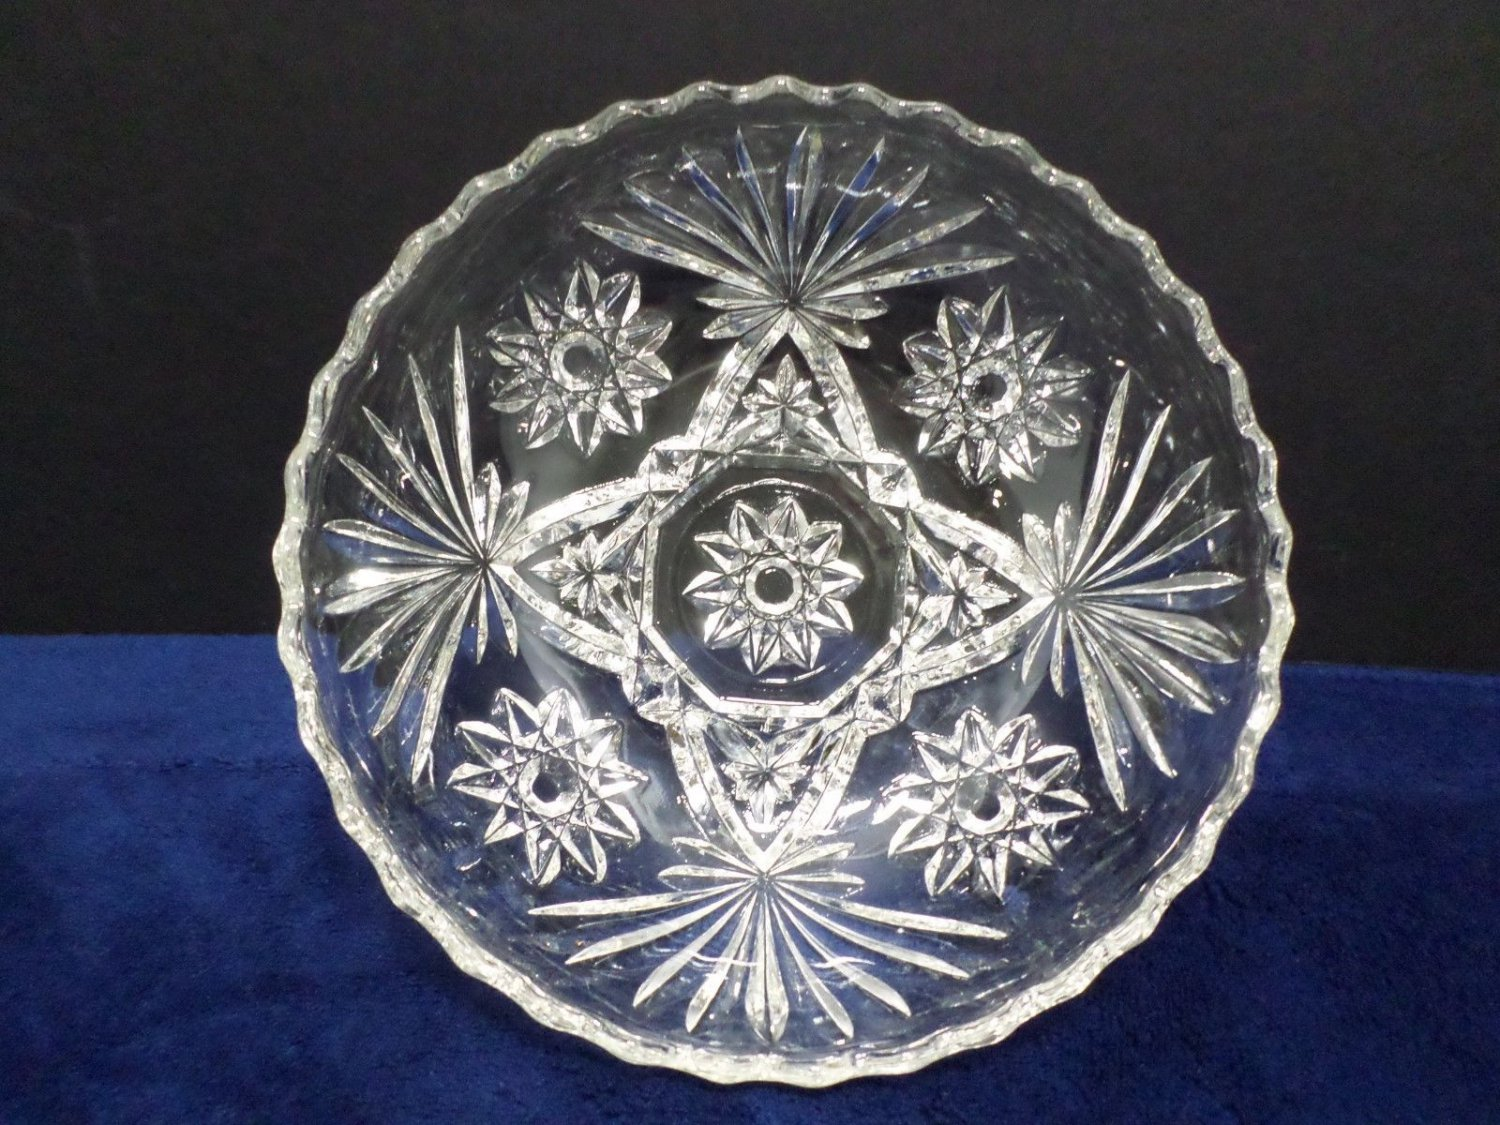 Cereal Bowl EAPC Clear Glass Star of David Pattern by Anchor Hocking